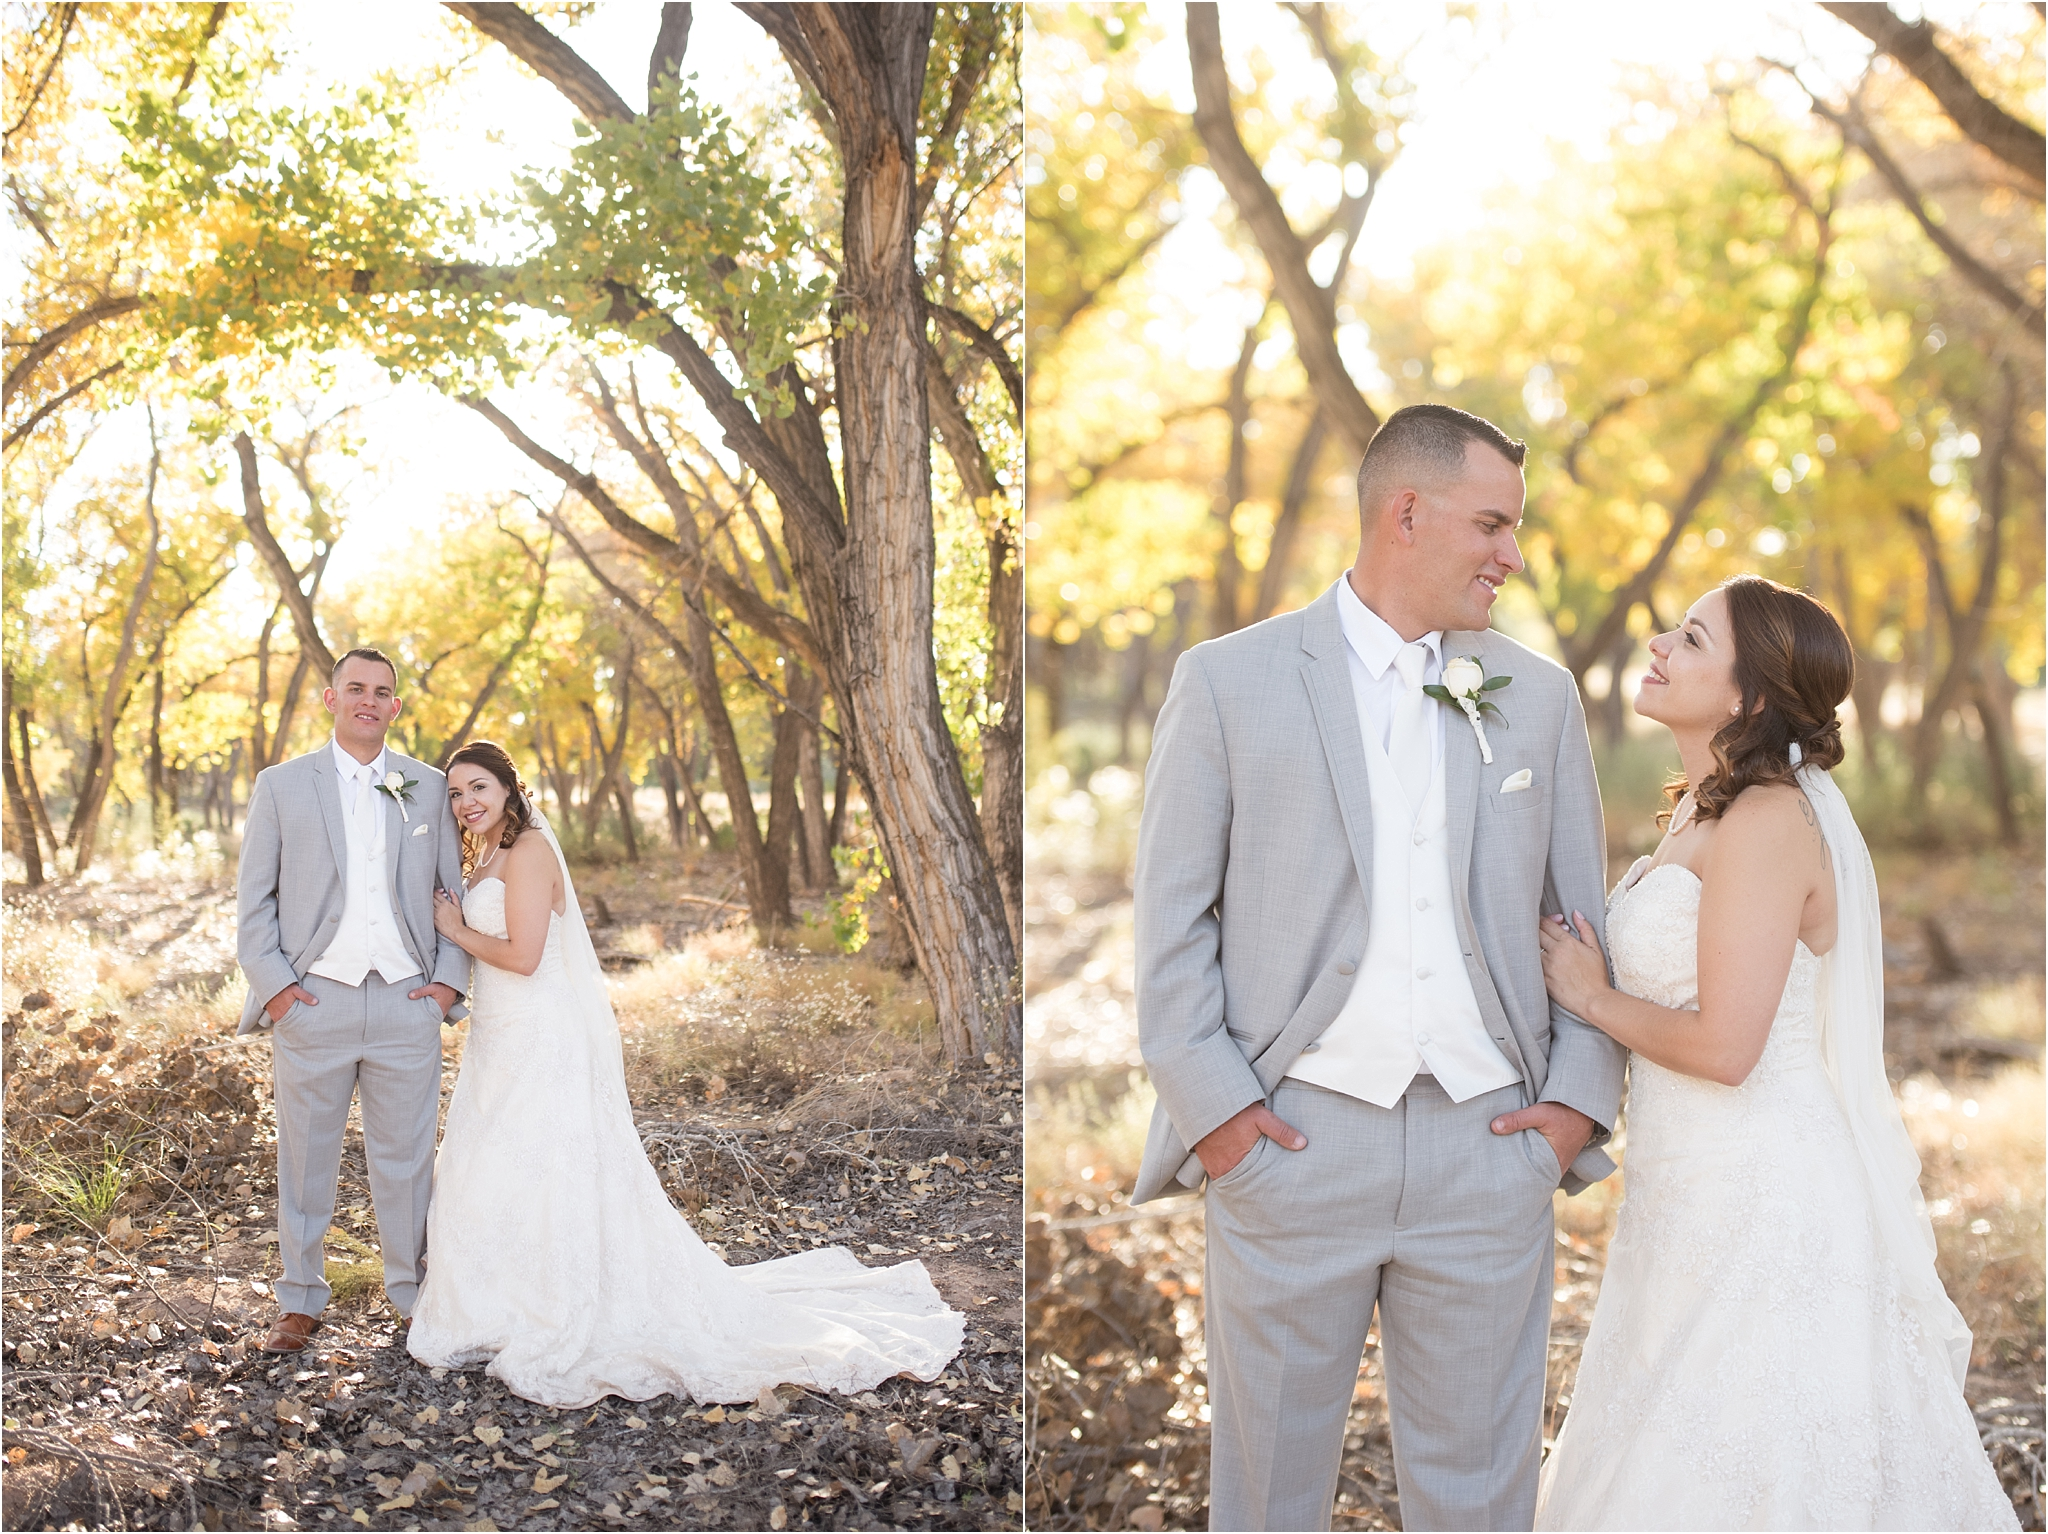 kayla kitts photography - albuquerque wedding photographer - hairpins and scissors - a cake odyssey - new mexico wedding photographer_0052.jpg